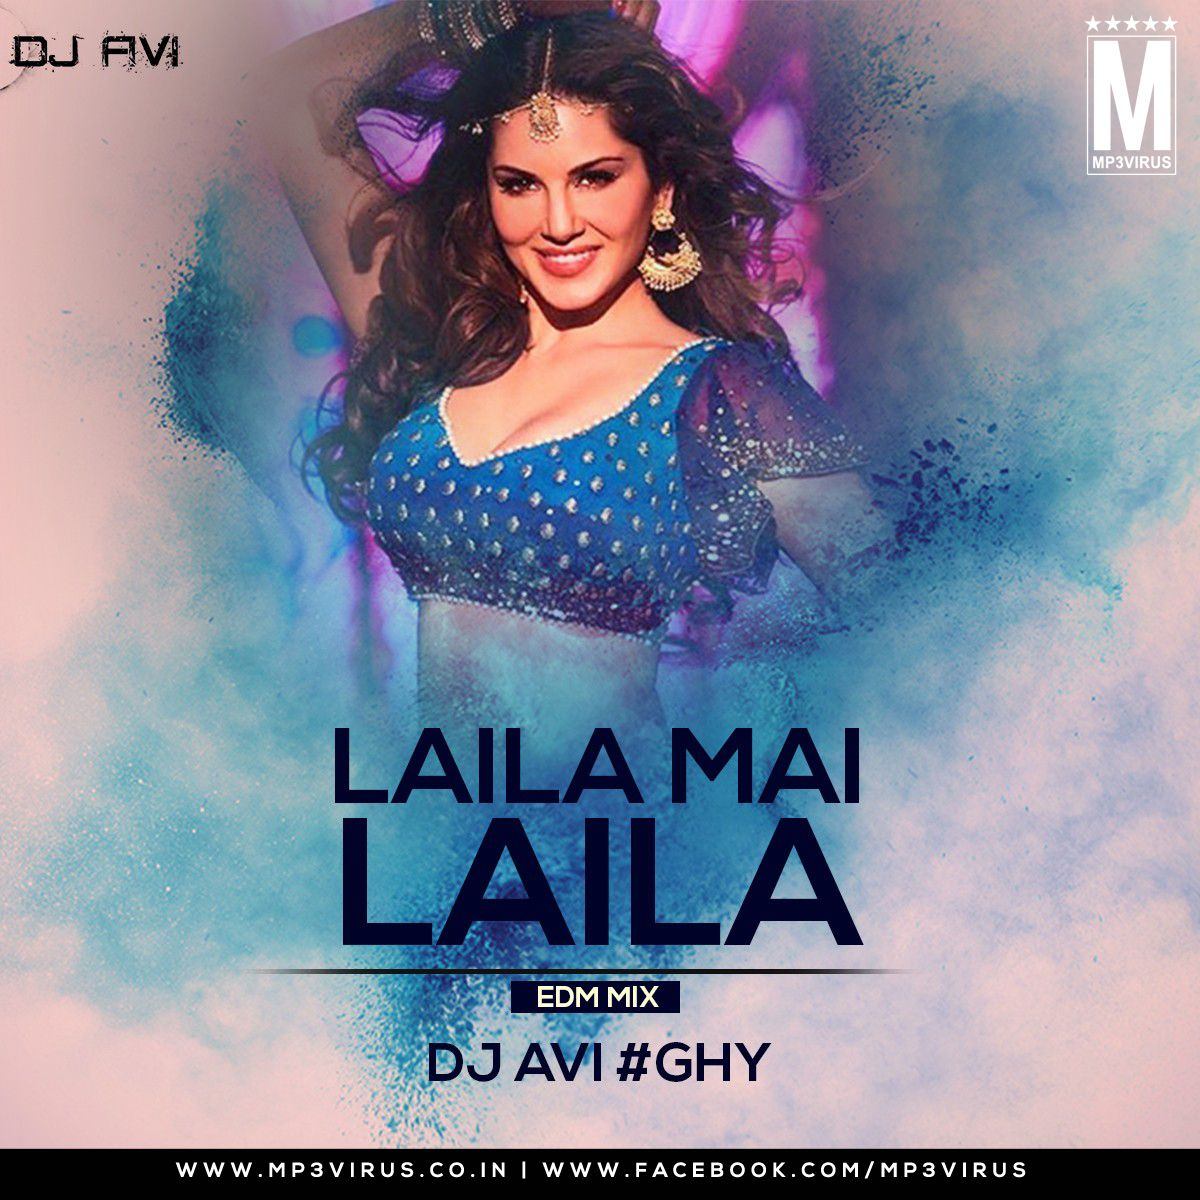 laila main laila - dj avi#ghy (edm mix) latest song, laila main